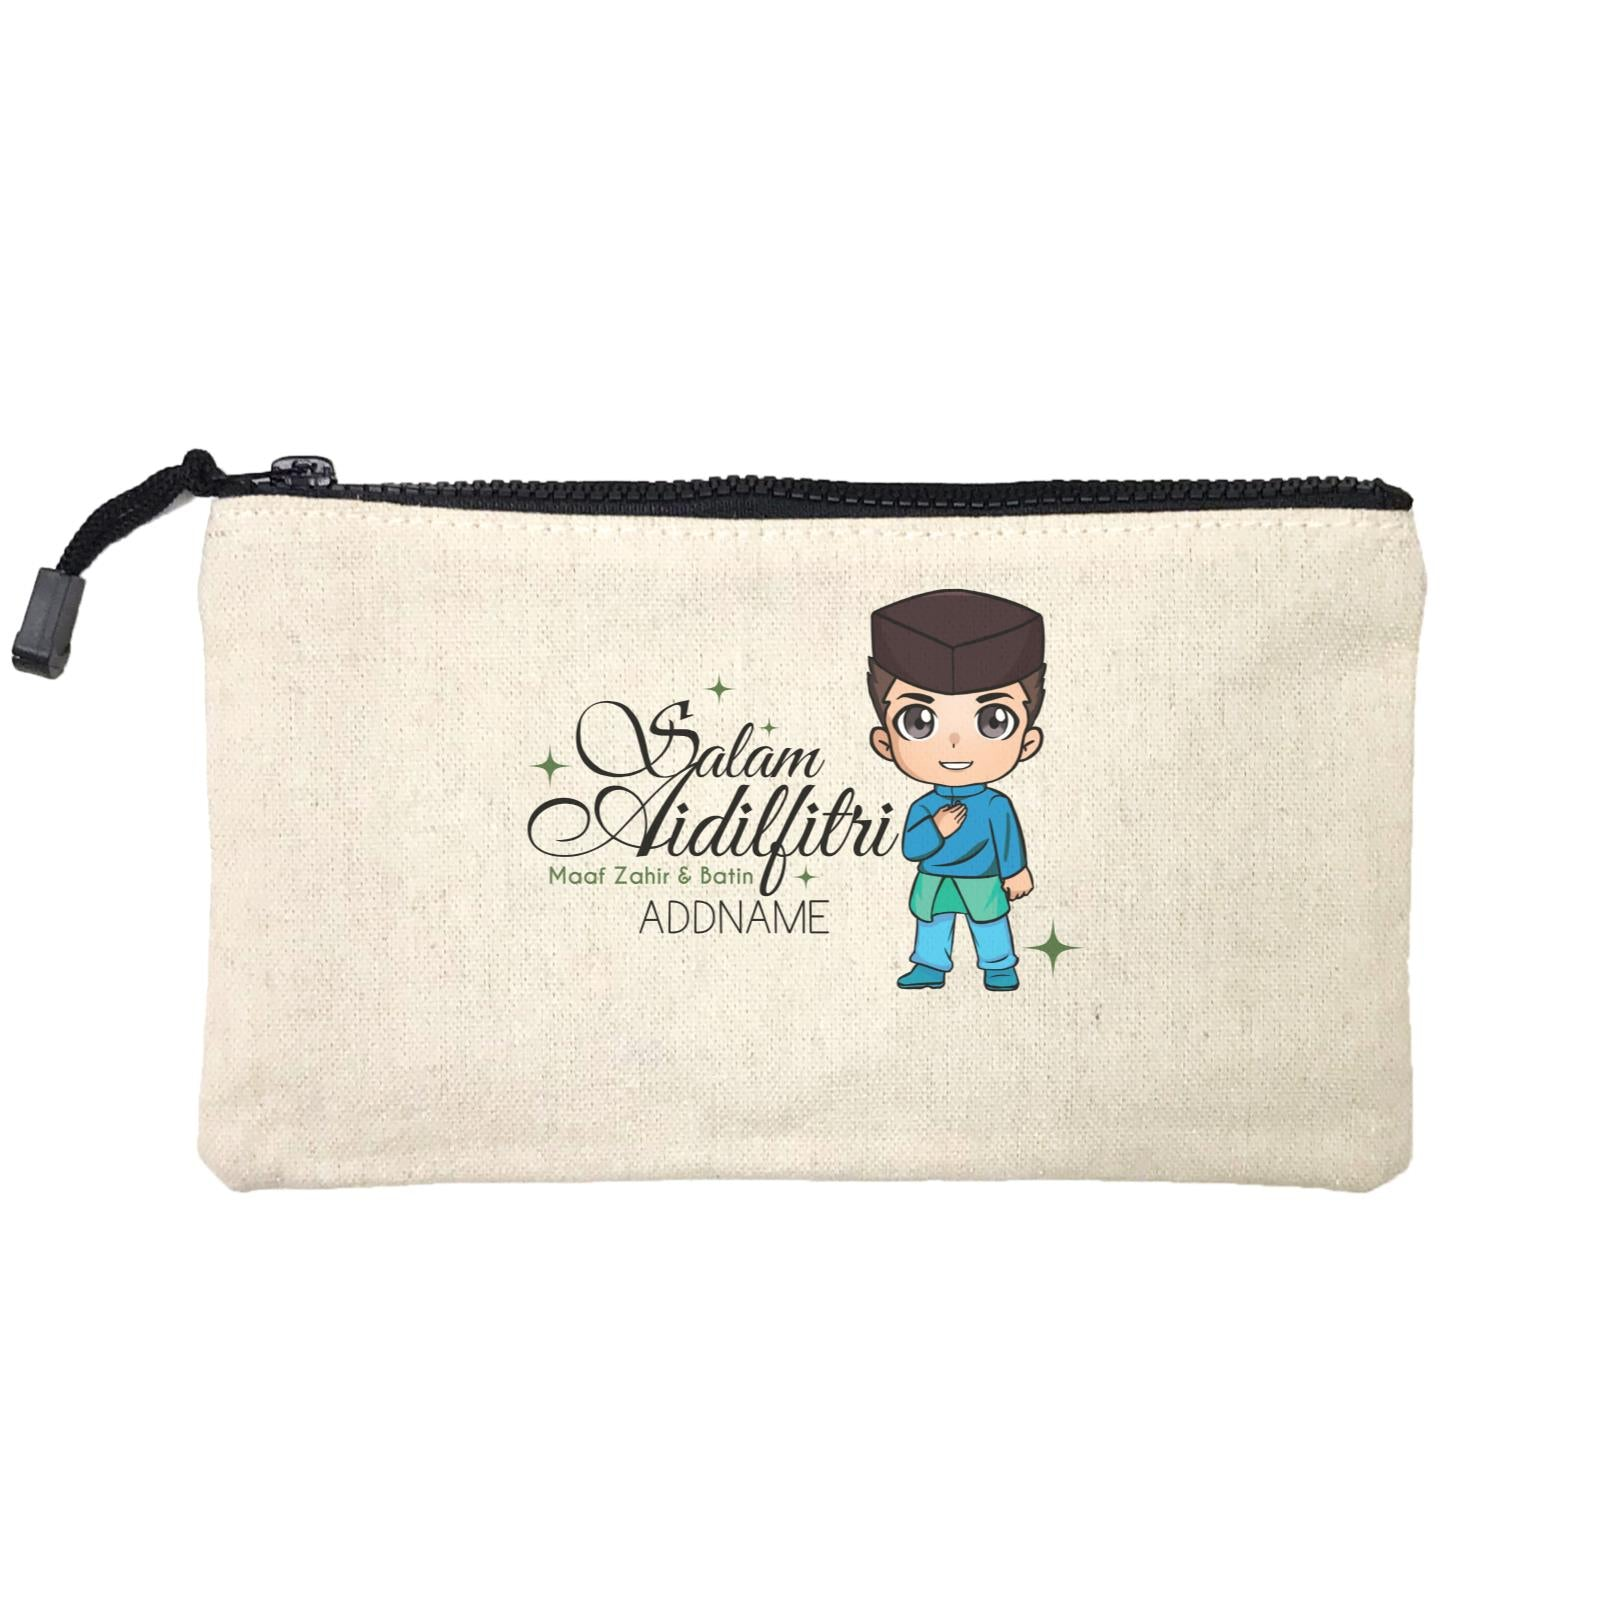 Raya Chibi Wishes Man Addname Wishes Everyone Salam Aidilfitri Maaf Zahir & Batin Mini Accessories Stationery Pouch